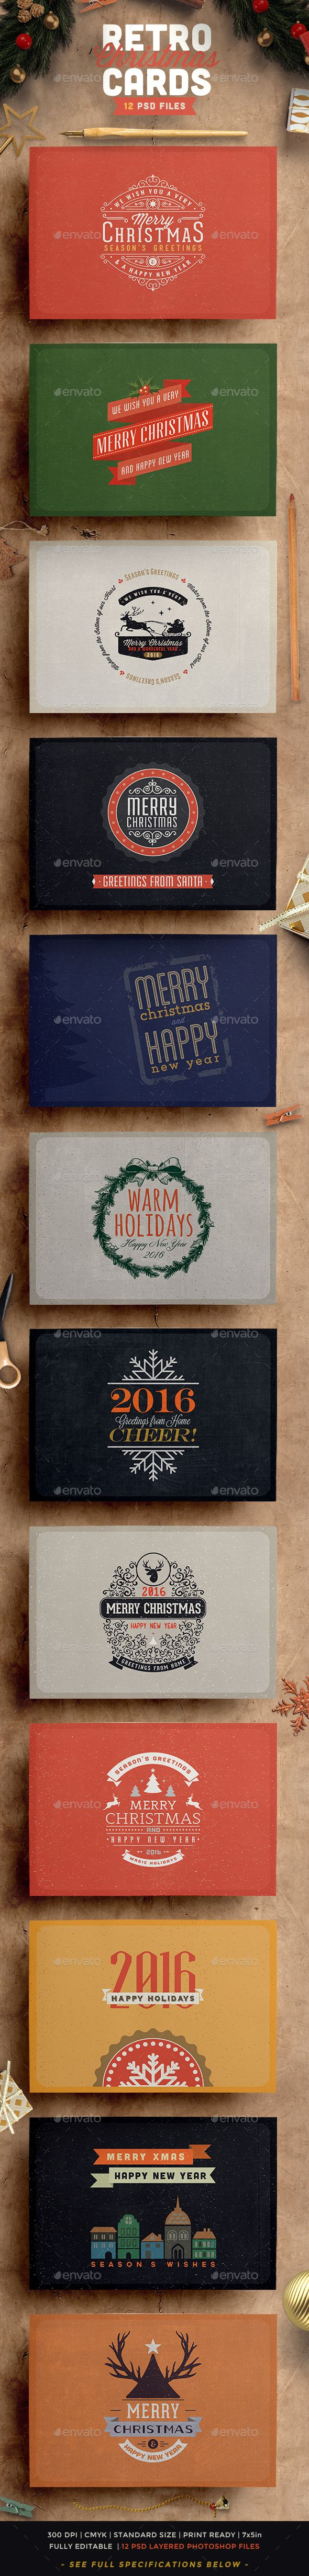 best 25 holiday greeting cards ideas on pinterest